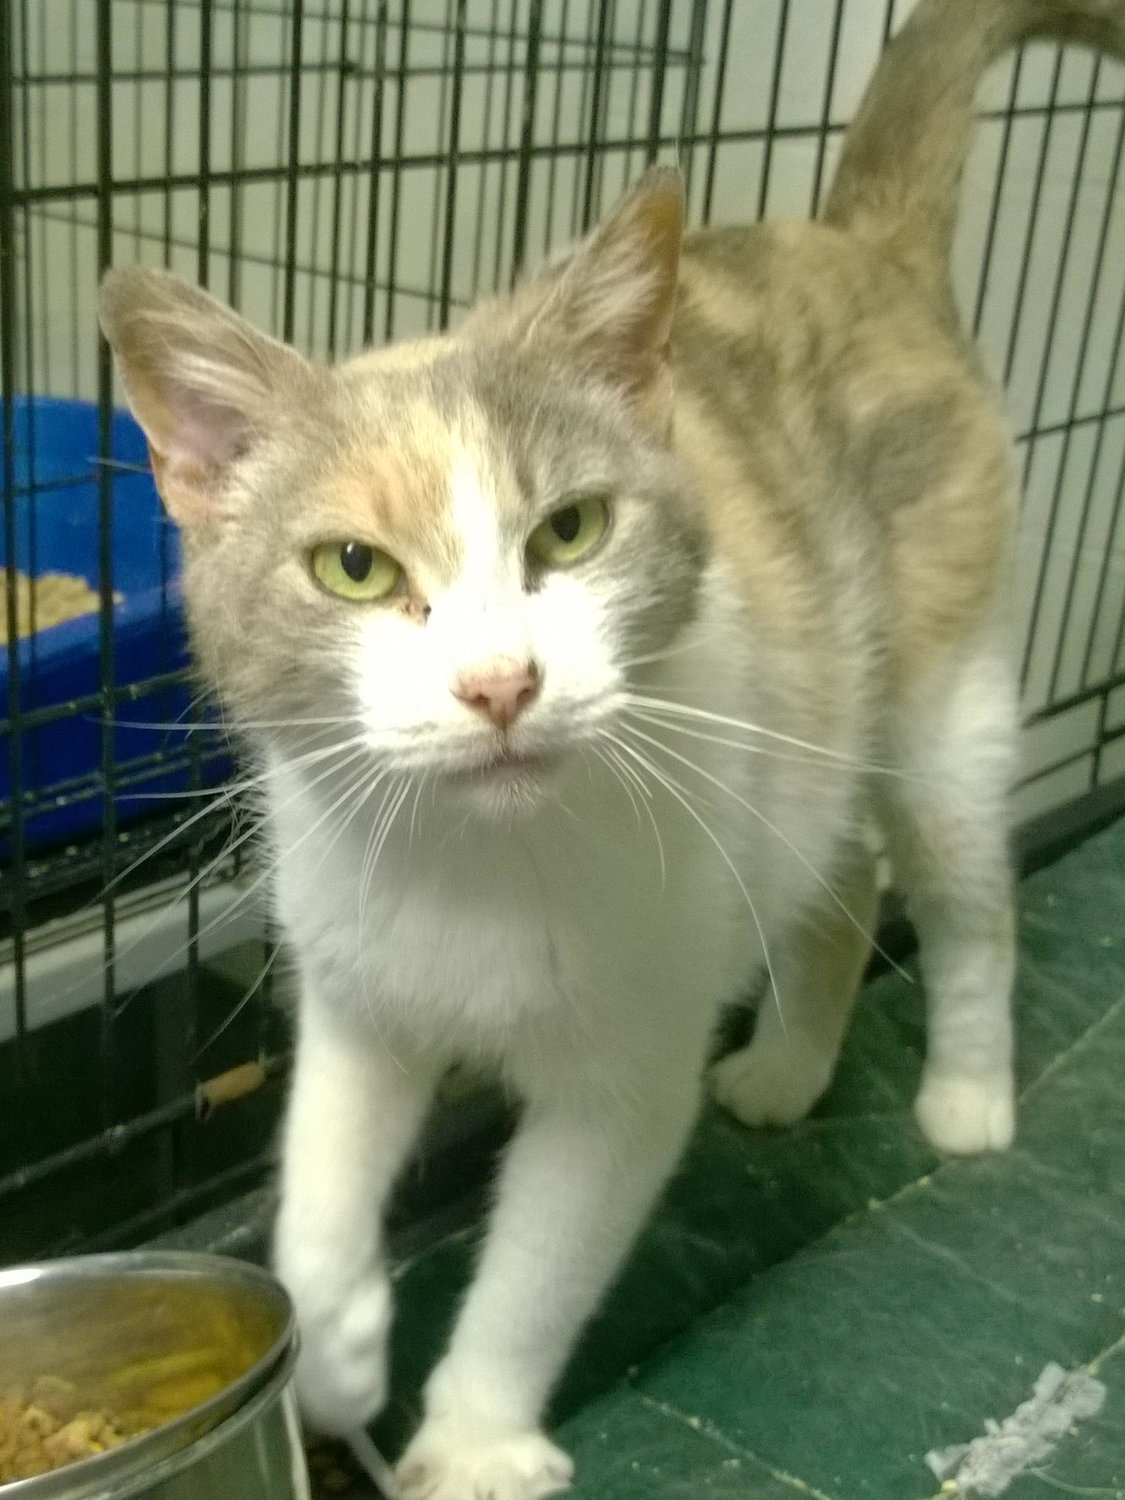 Come meet Princess at the Rehoboth Animal Shelter.